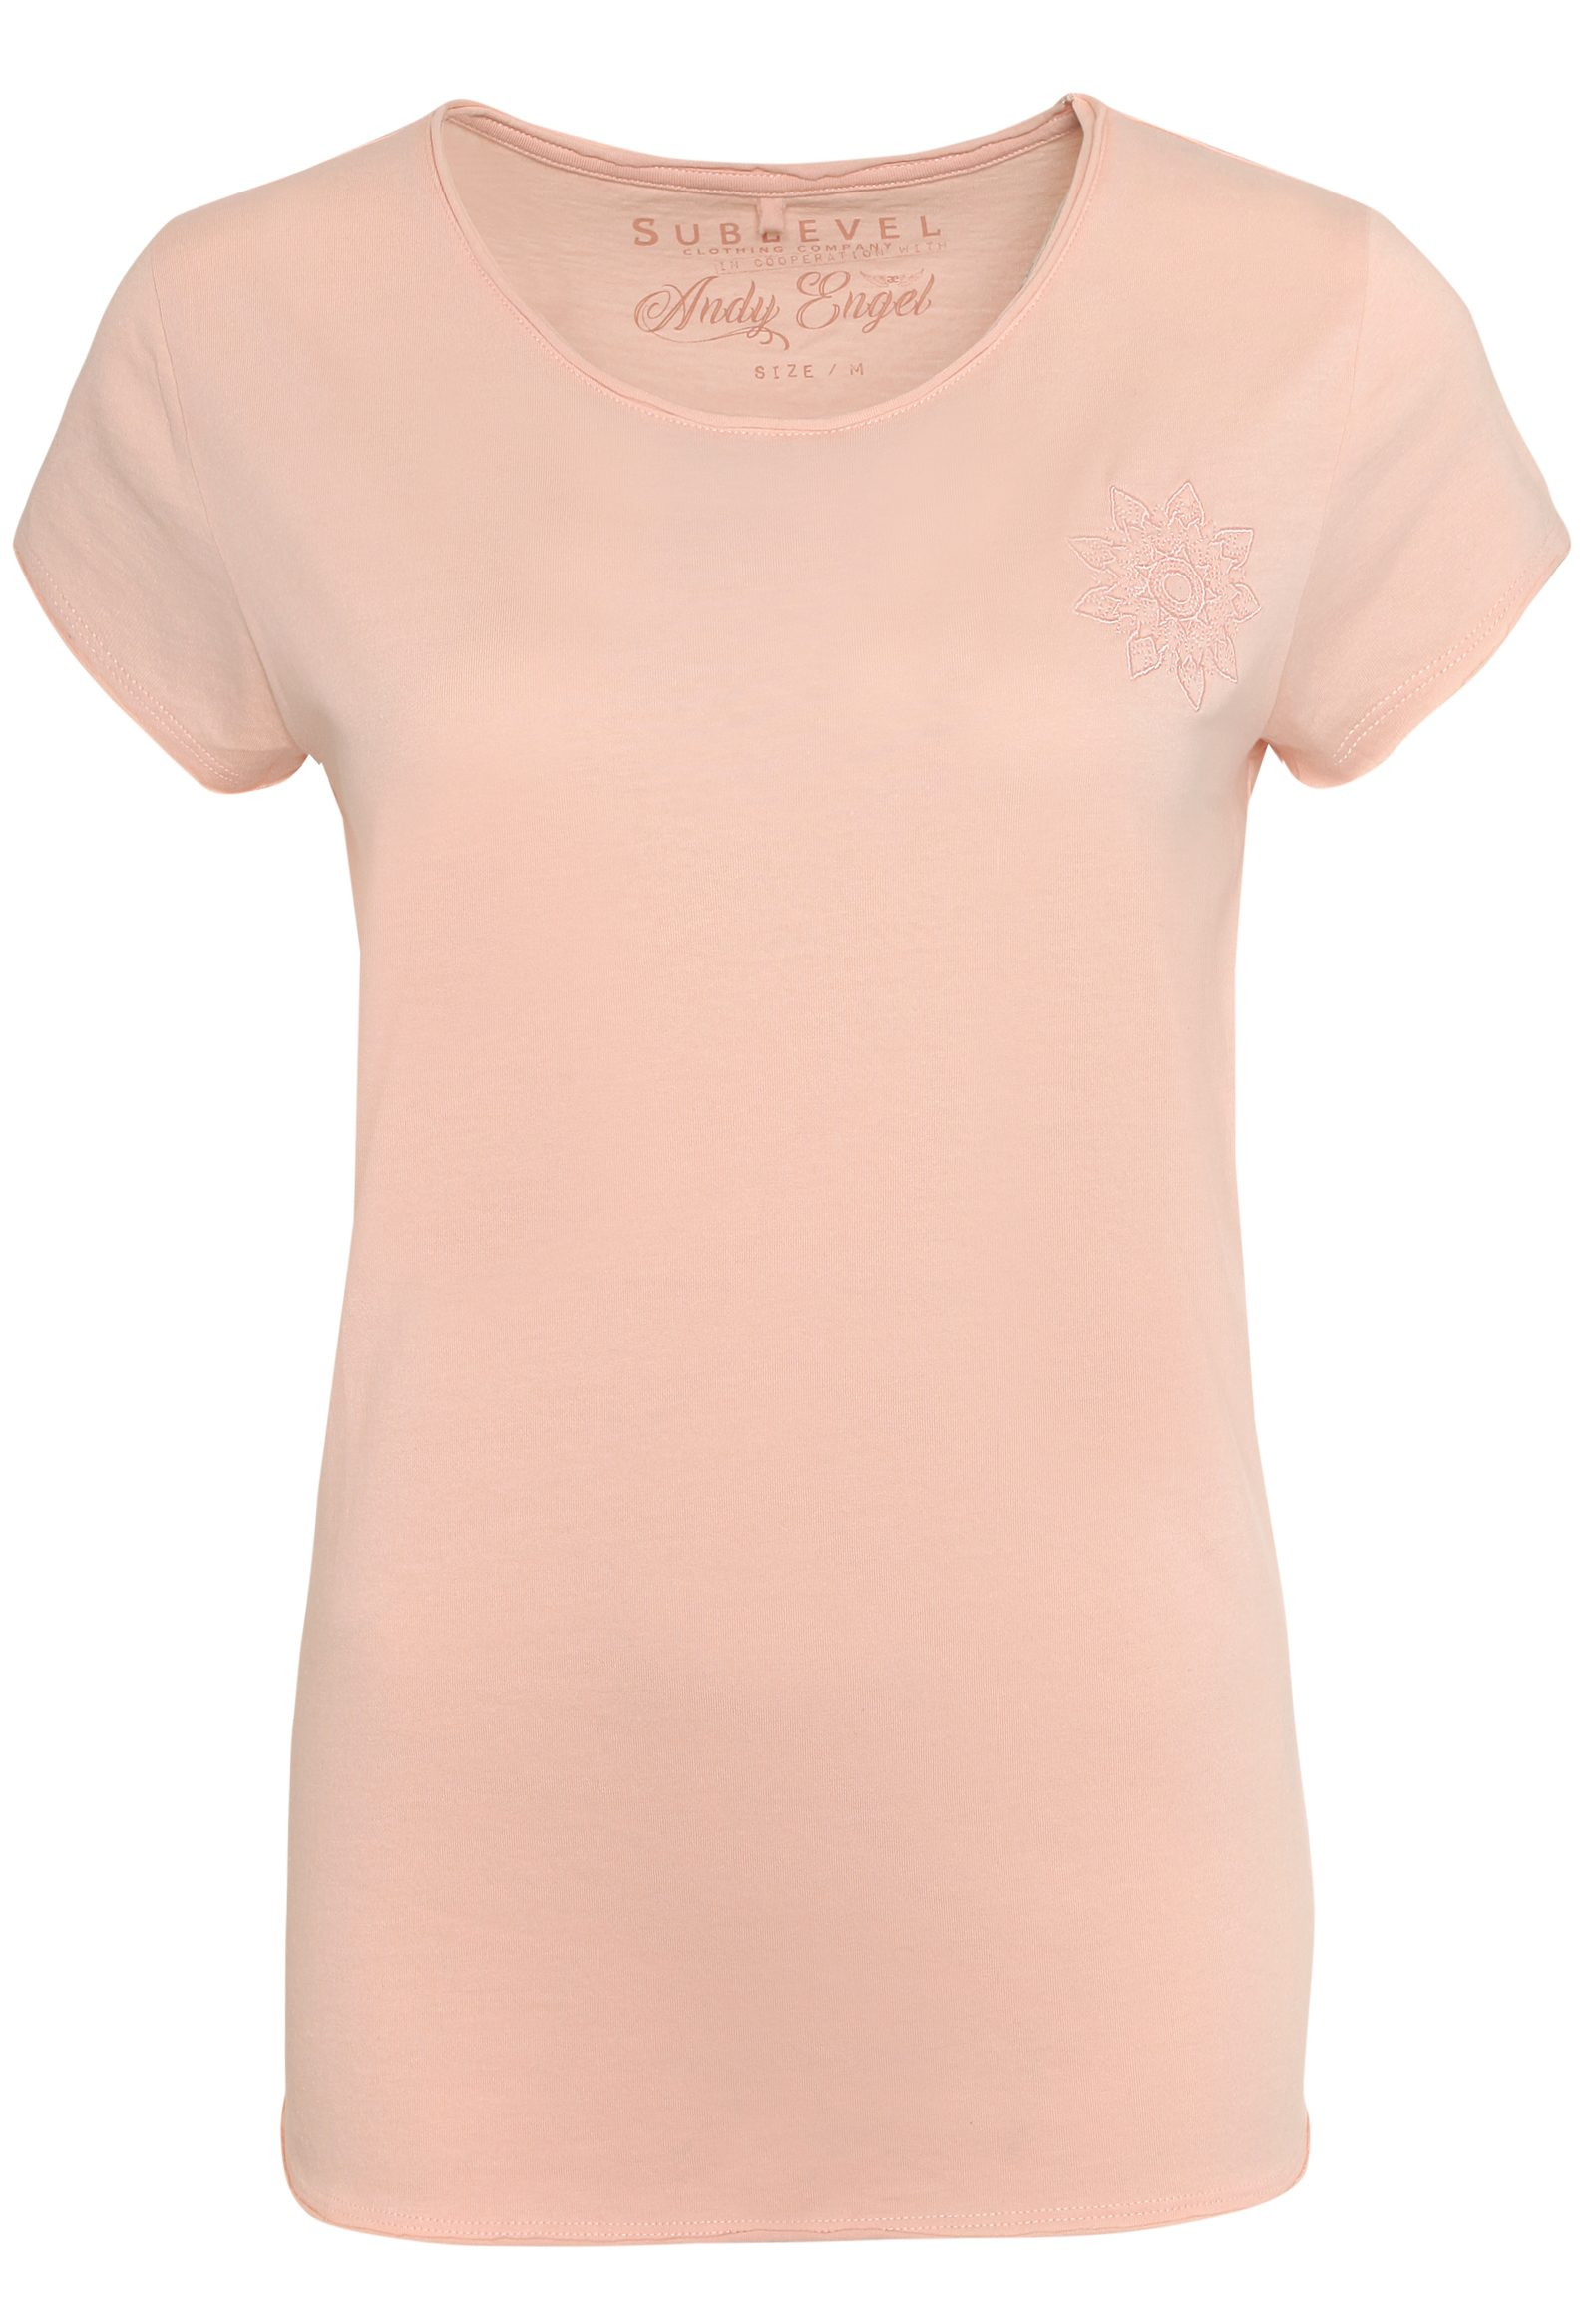 SUBLEVEL Damen T-Shirt mit Mandala-Stickerei rosa | 04058427552424